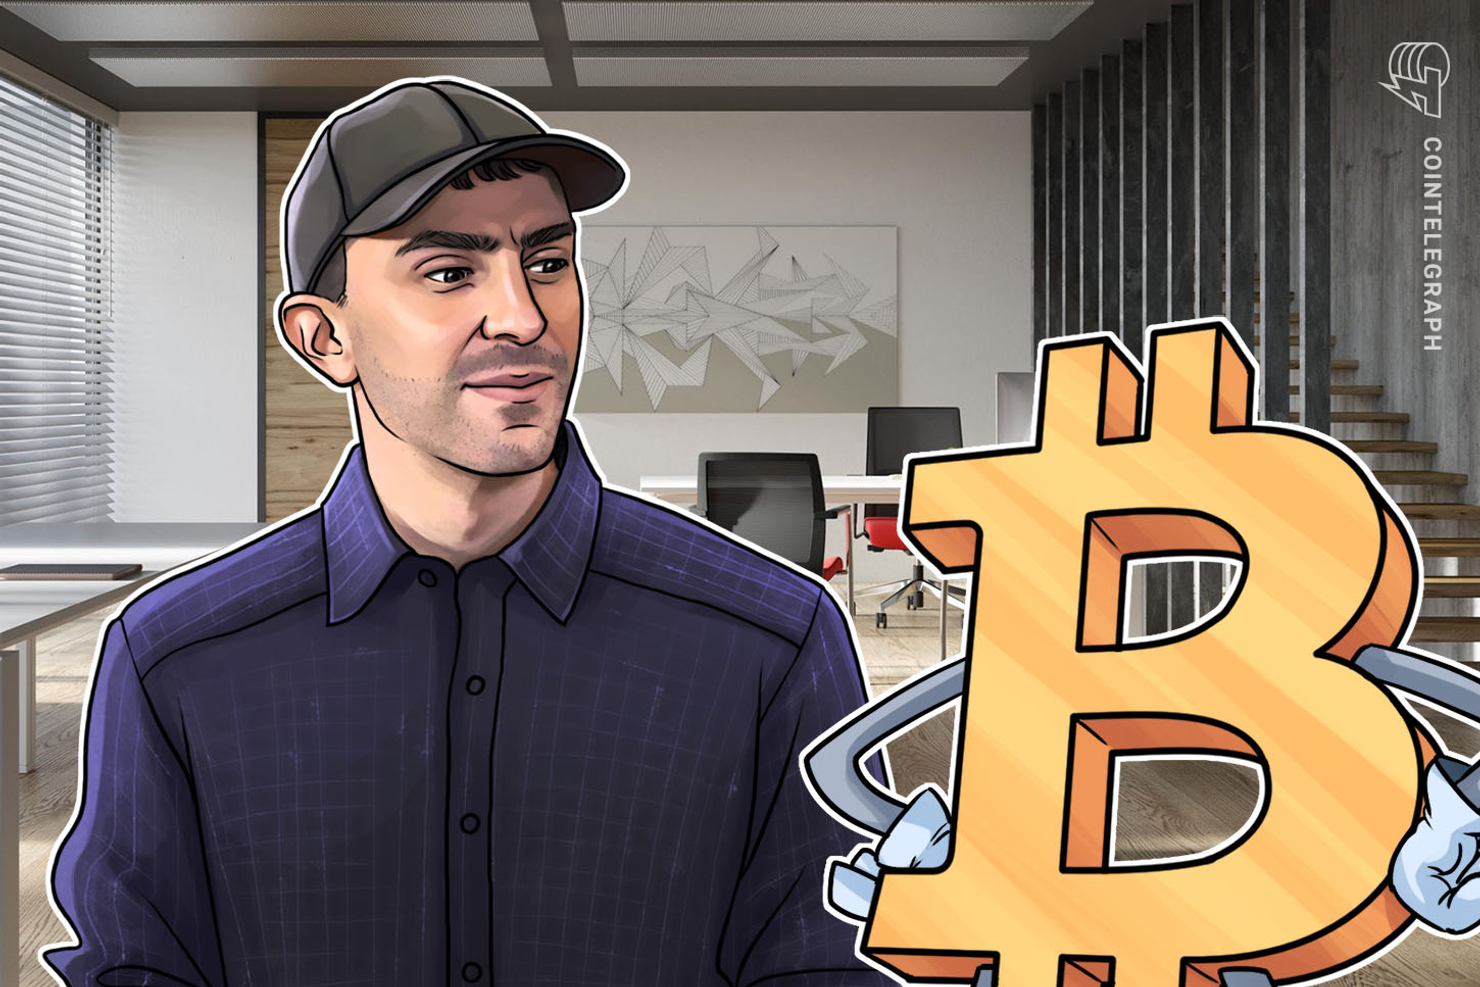 Former Wall Street Exec Tone Vays: There Is No Evidence That the Crypto Winter Is Now Over